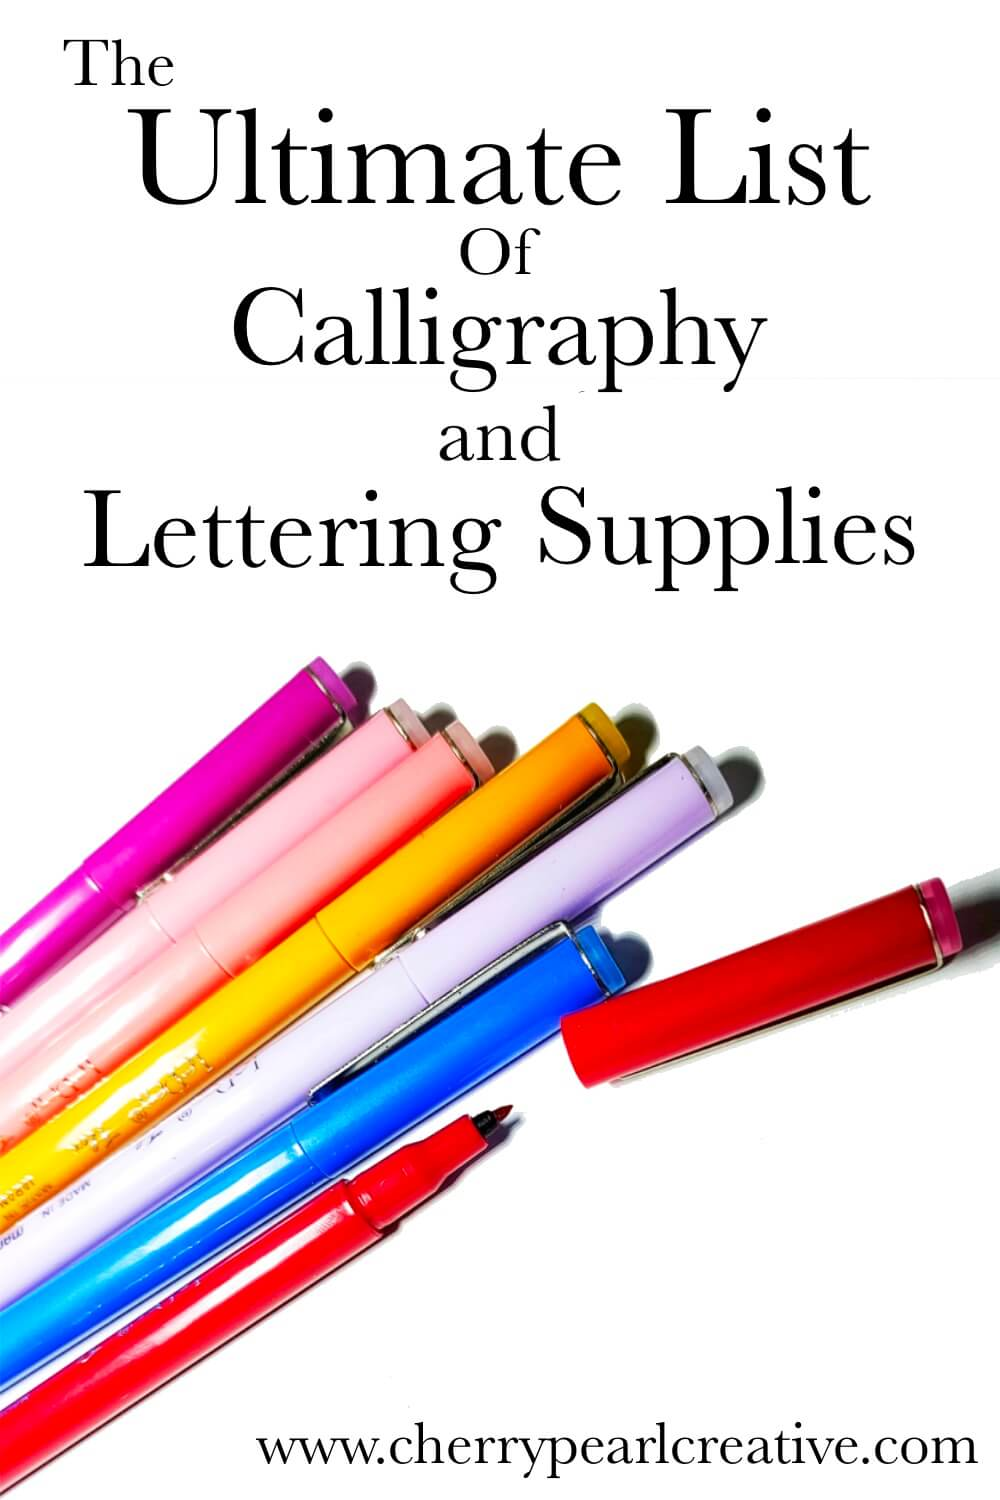 Calligraphy and Lettering Supplies: Brush Pens and More